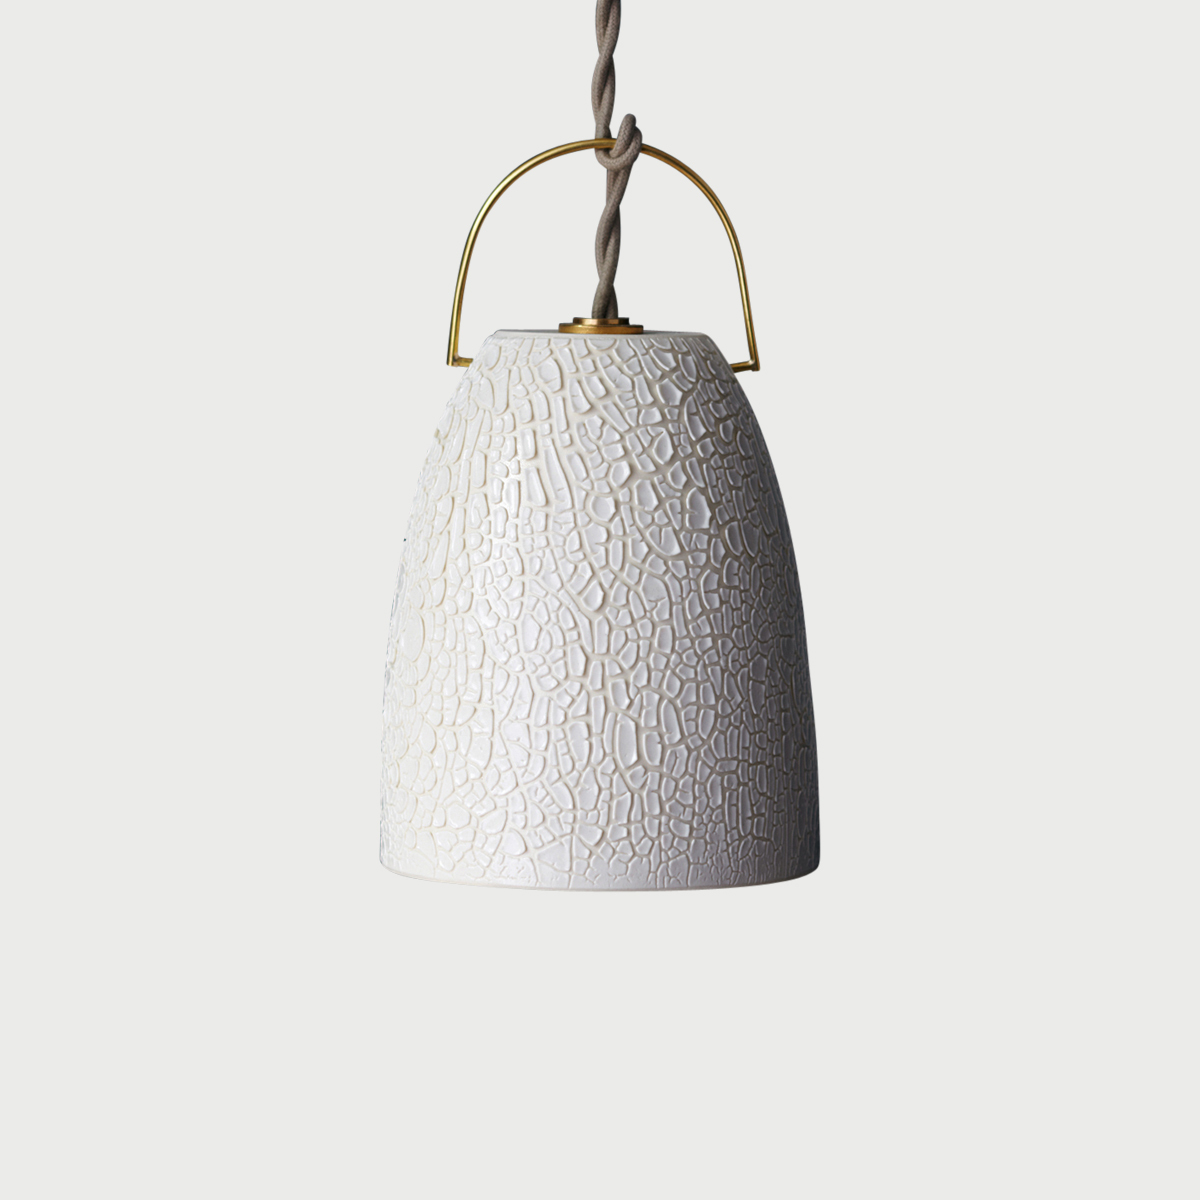 bell_crawl_pendant_lamp.jpg